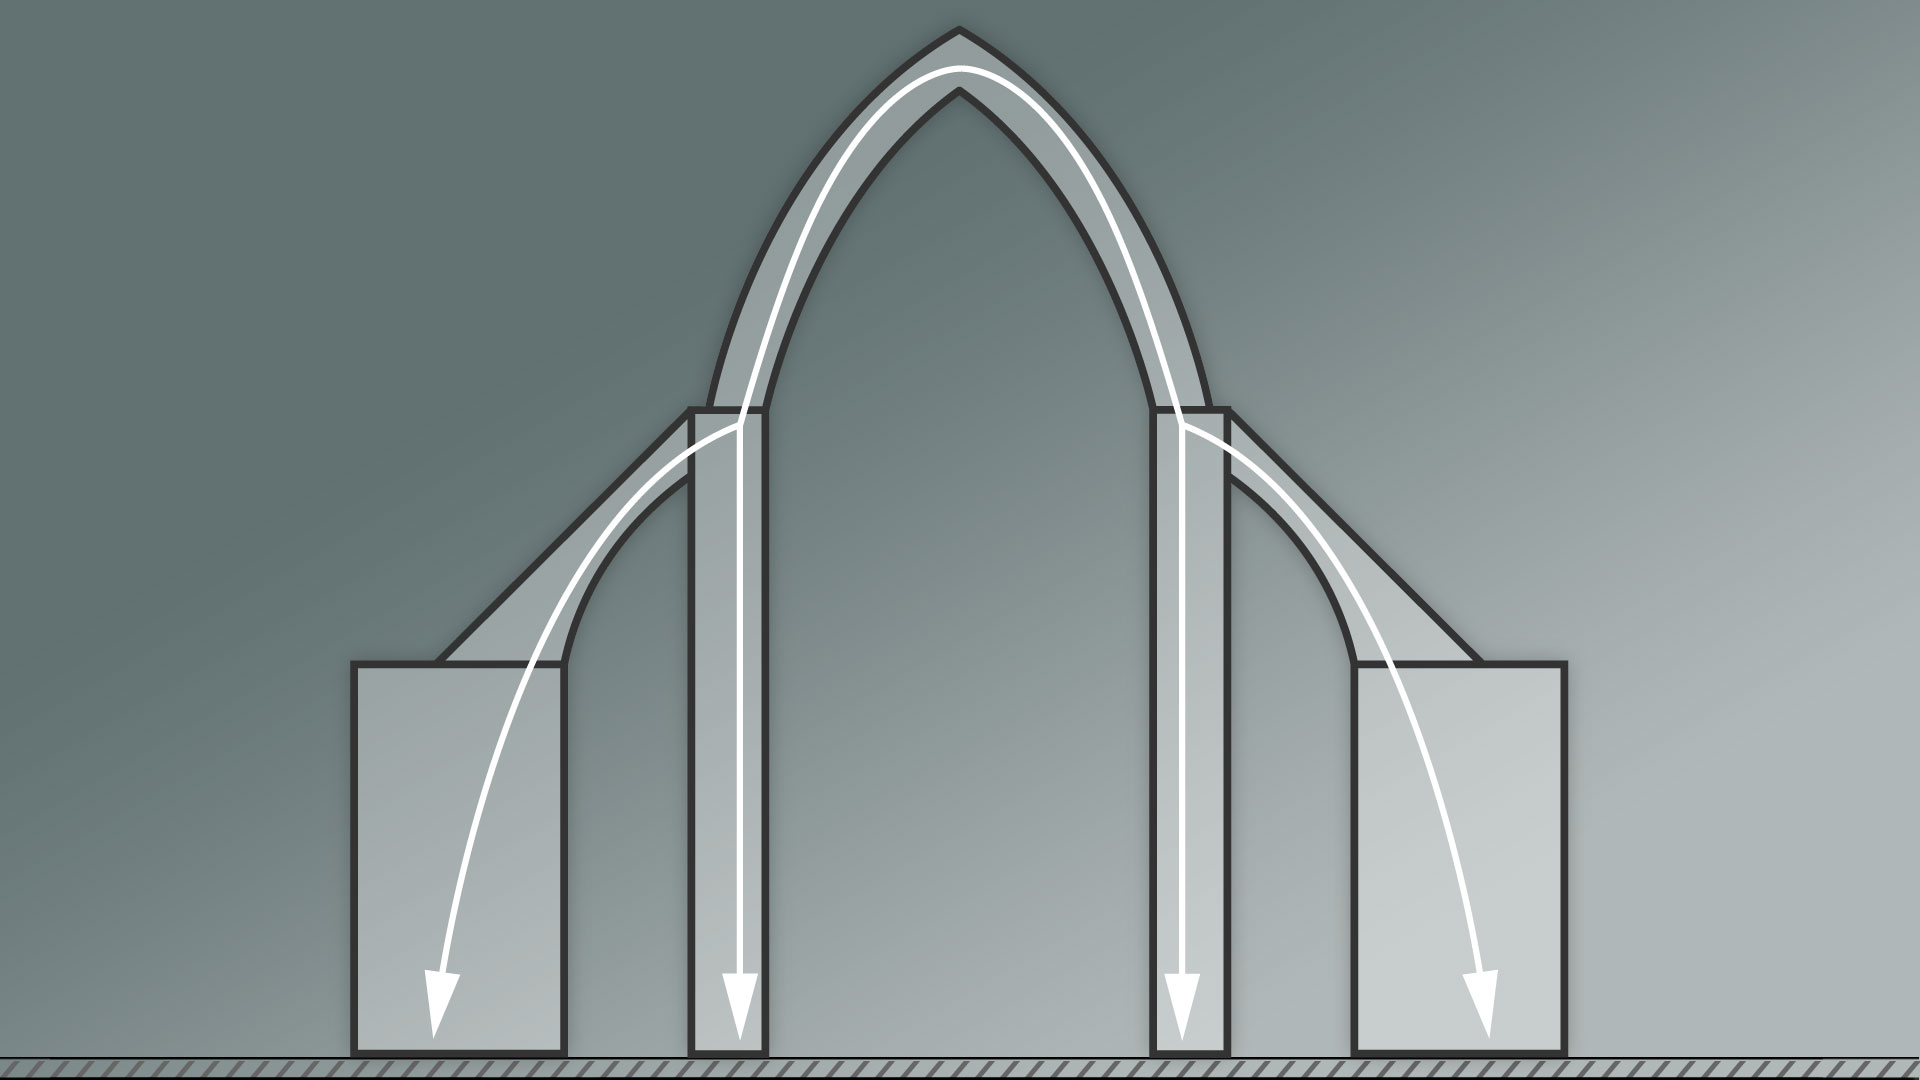 cathedral architecture gothic arches diagram vw t4 wiring nova official website physics of stone